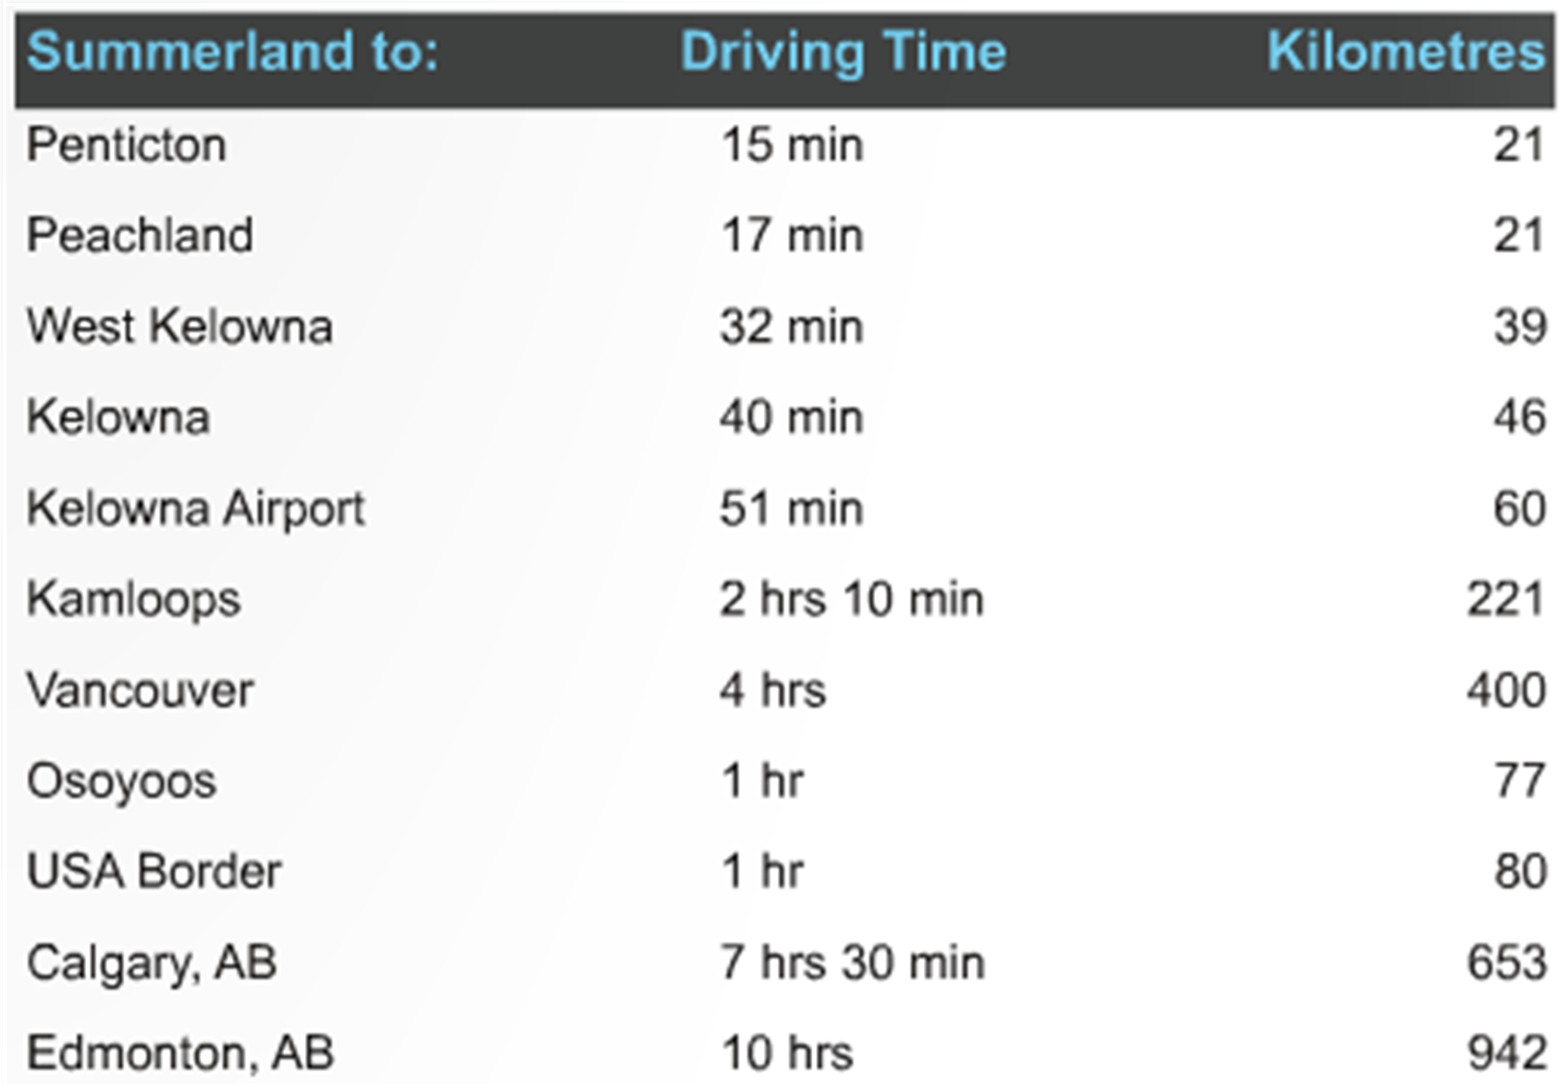 Driving Times